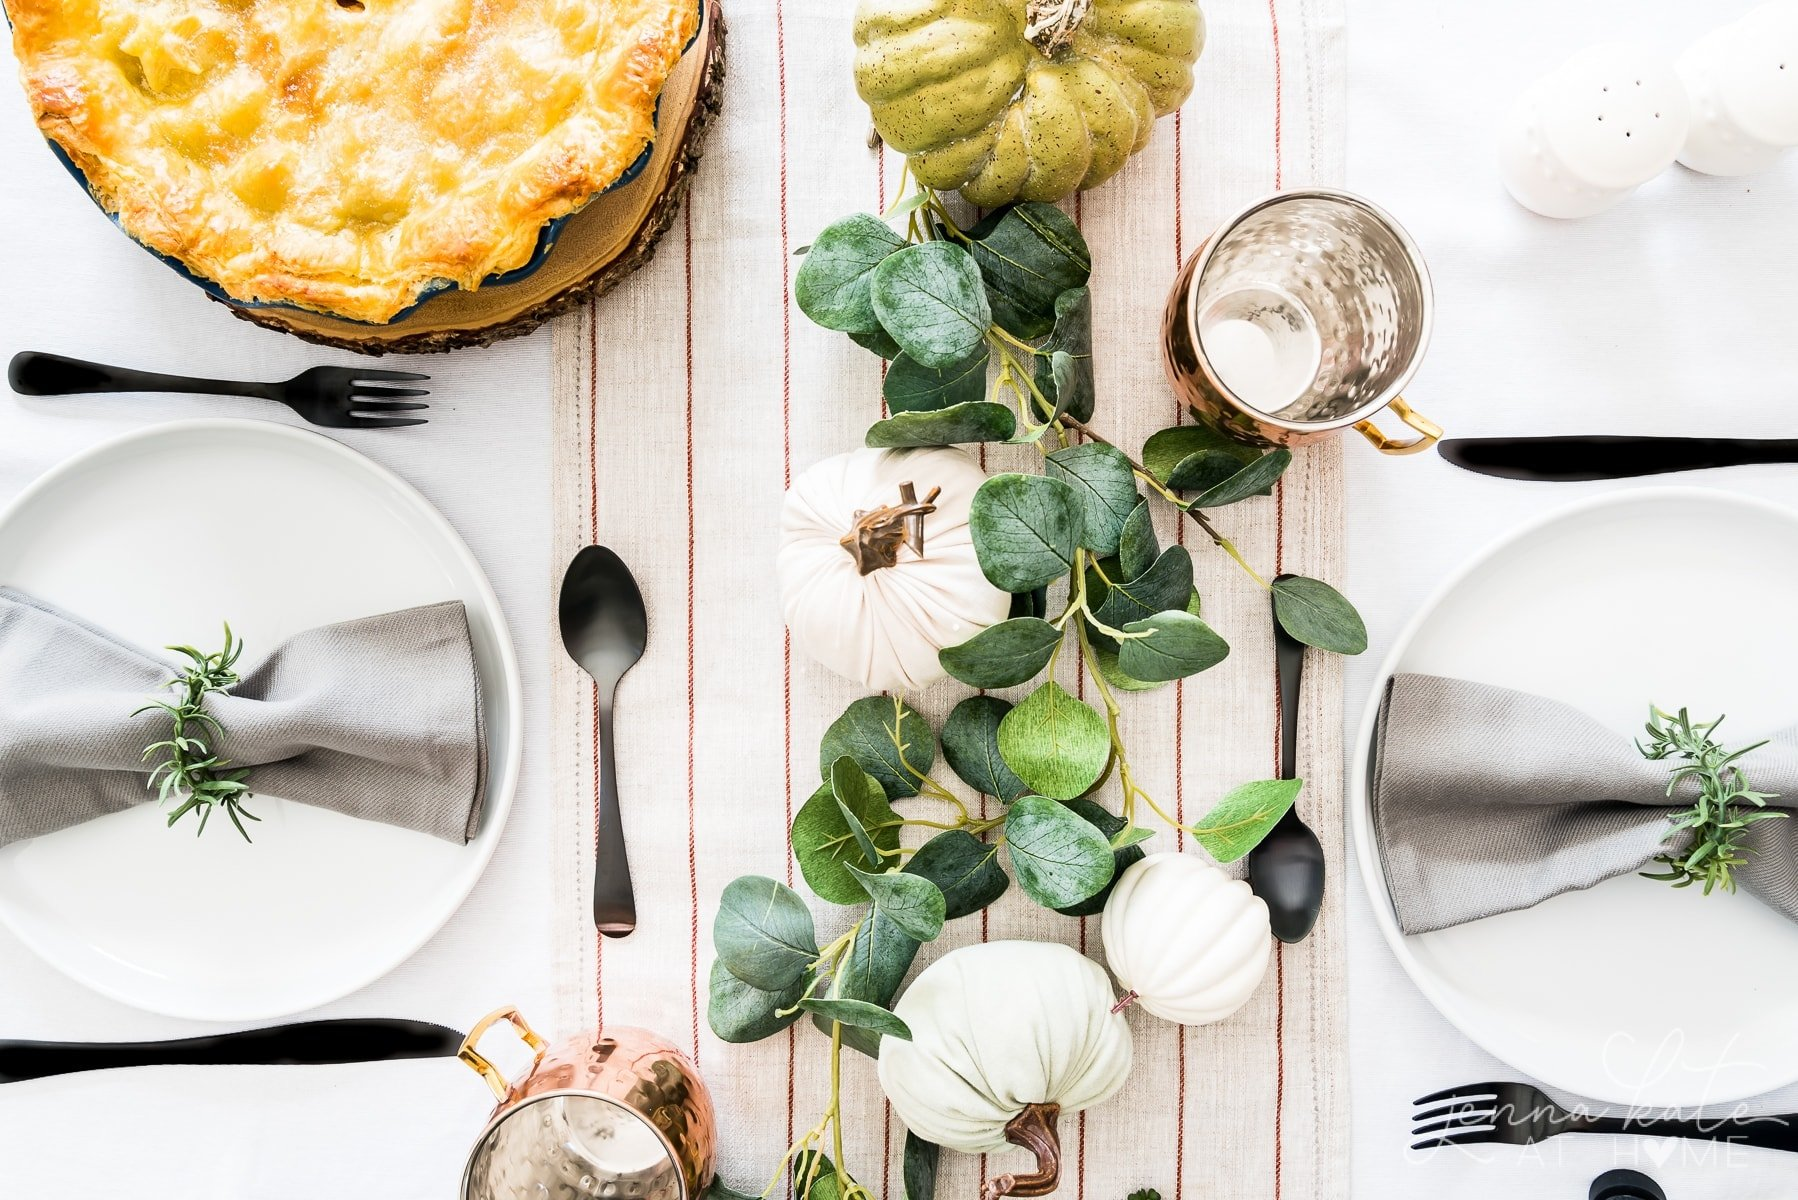 Fall table decor from Walmart